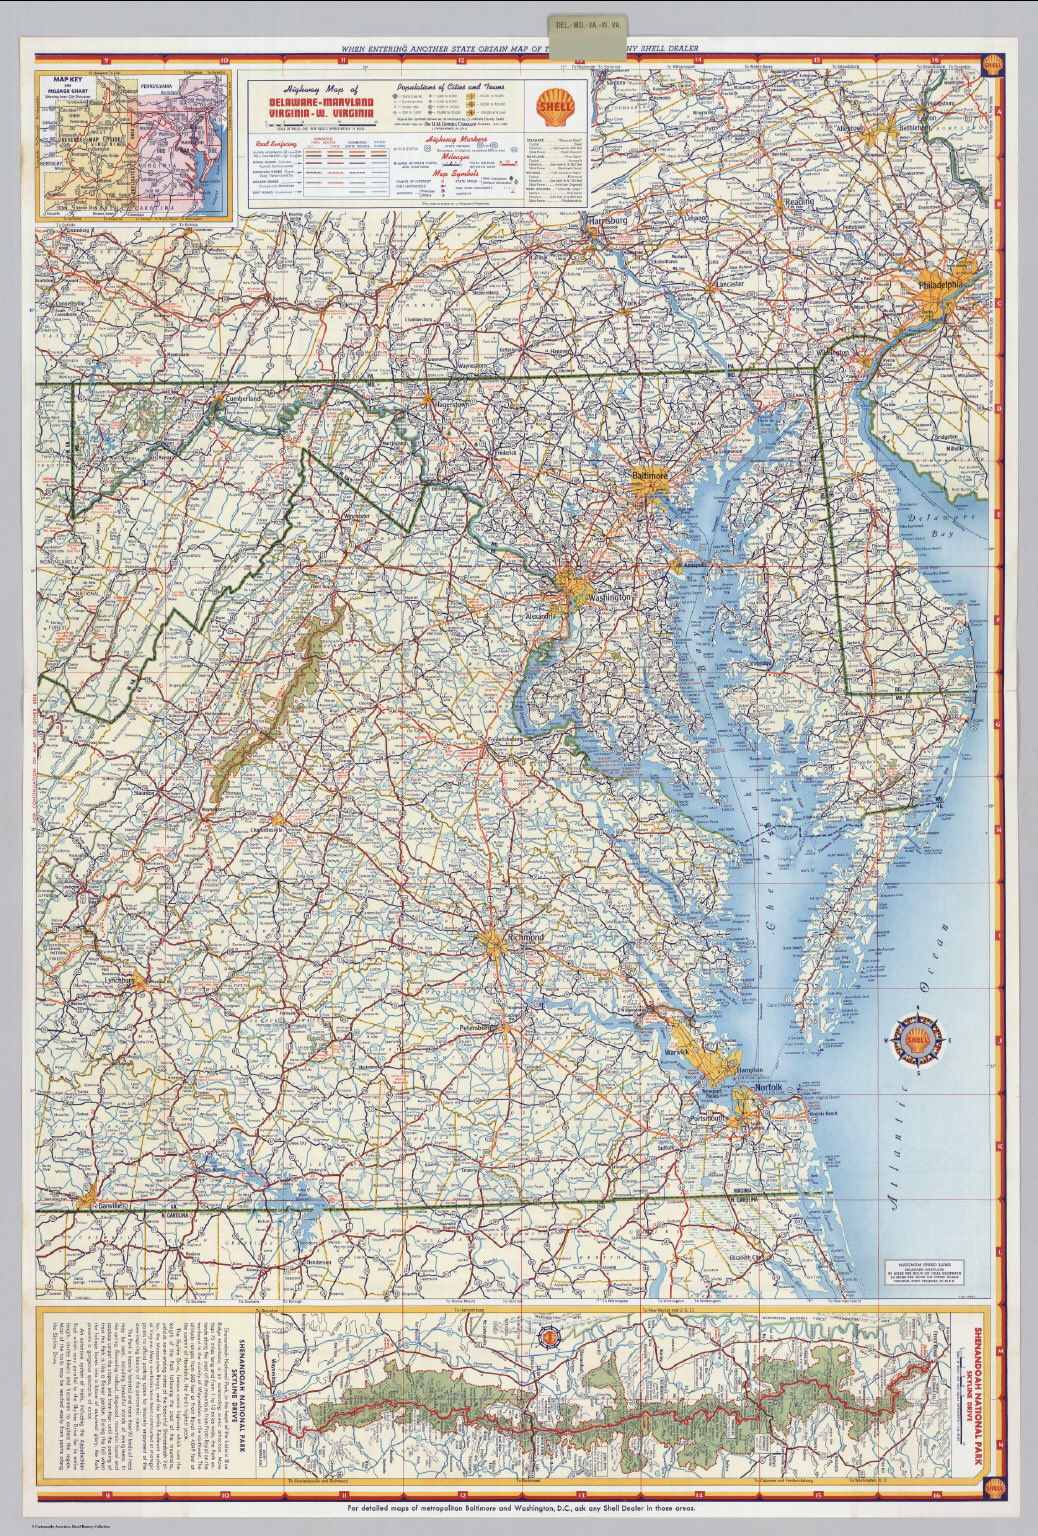 Shell Highway Map of Delaware   Maryland, Virginia, W. Virginia